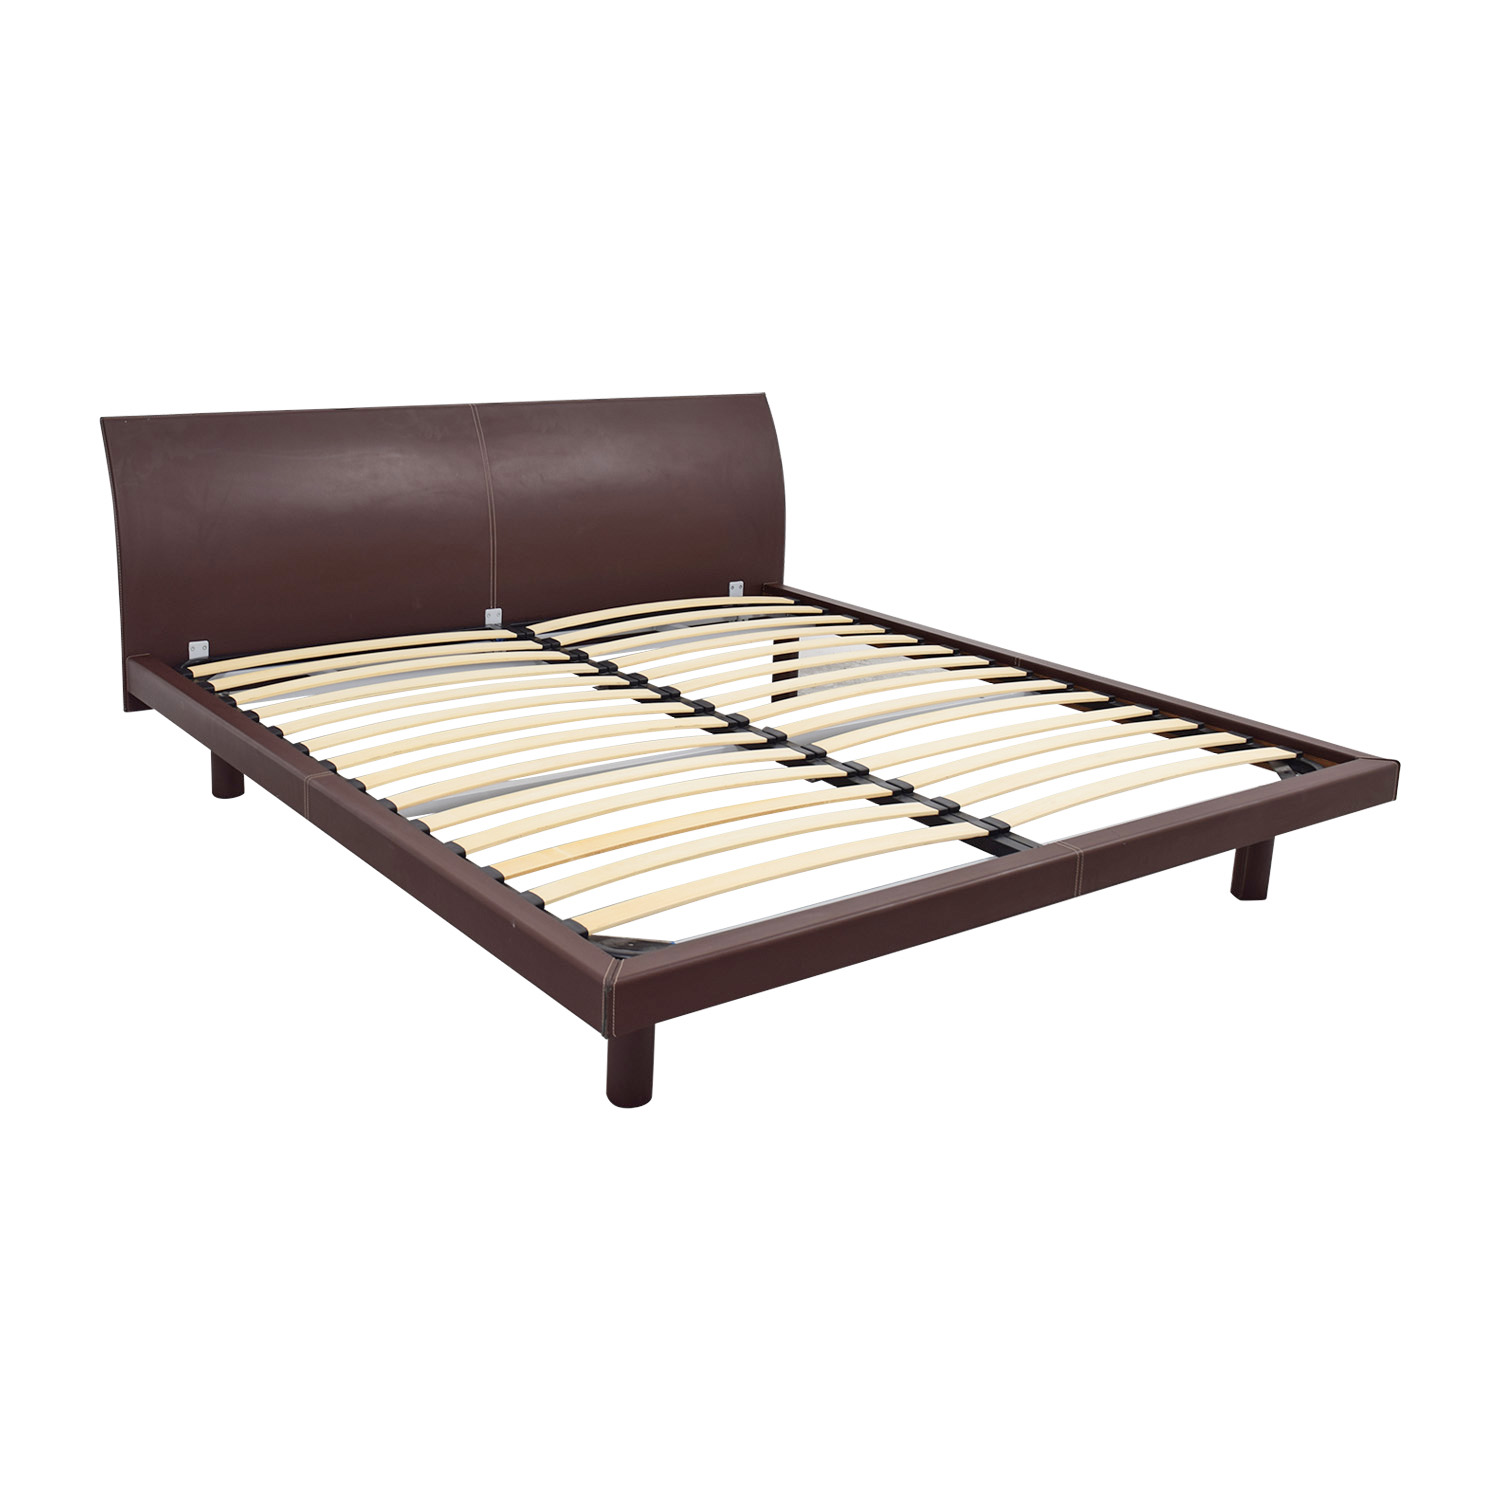 Calligaris Concorde Leather King Bed Calligaris